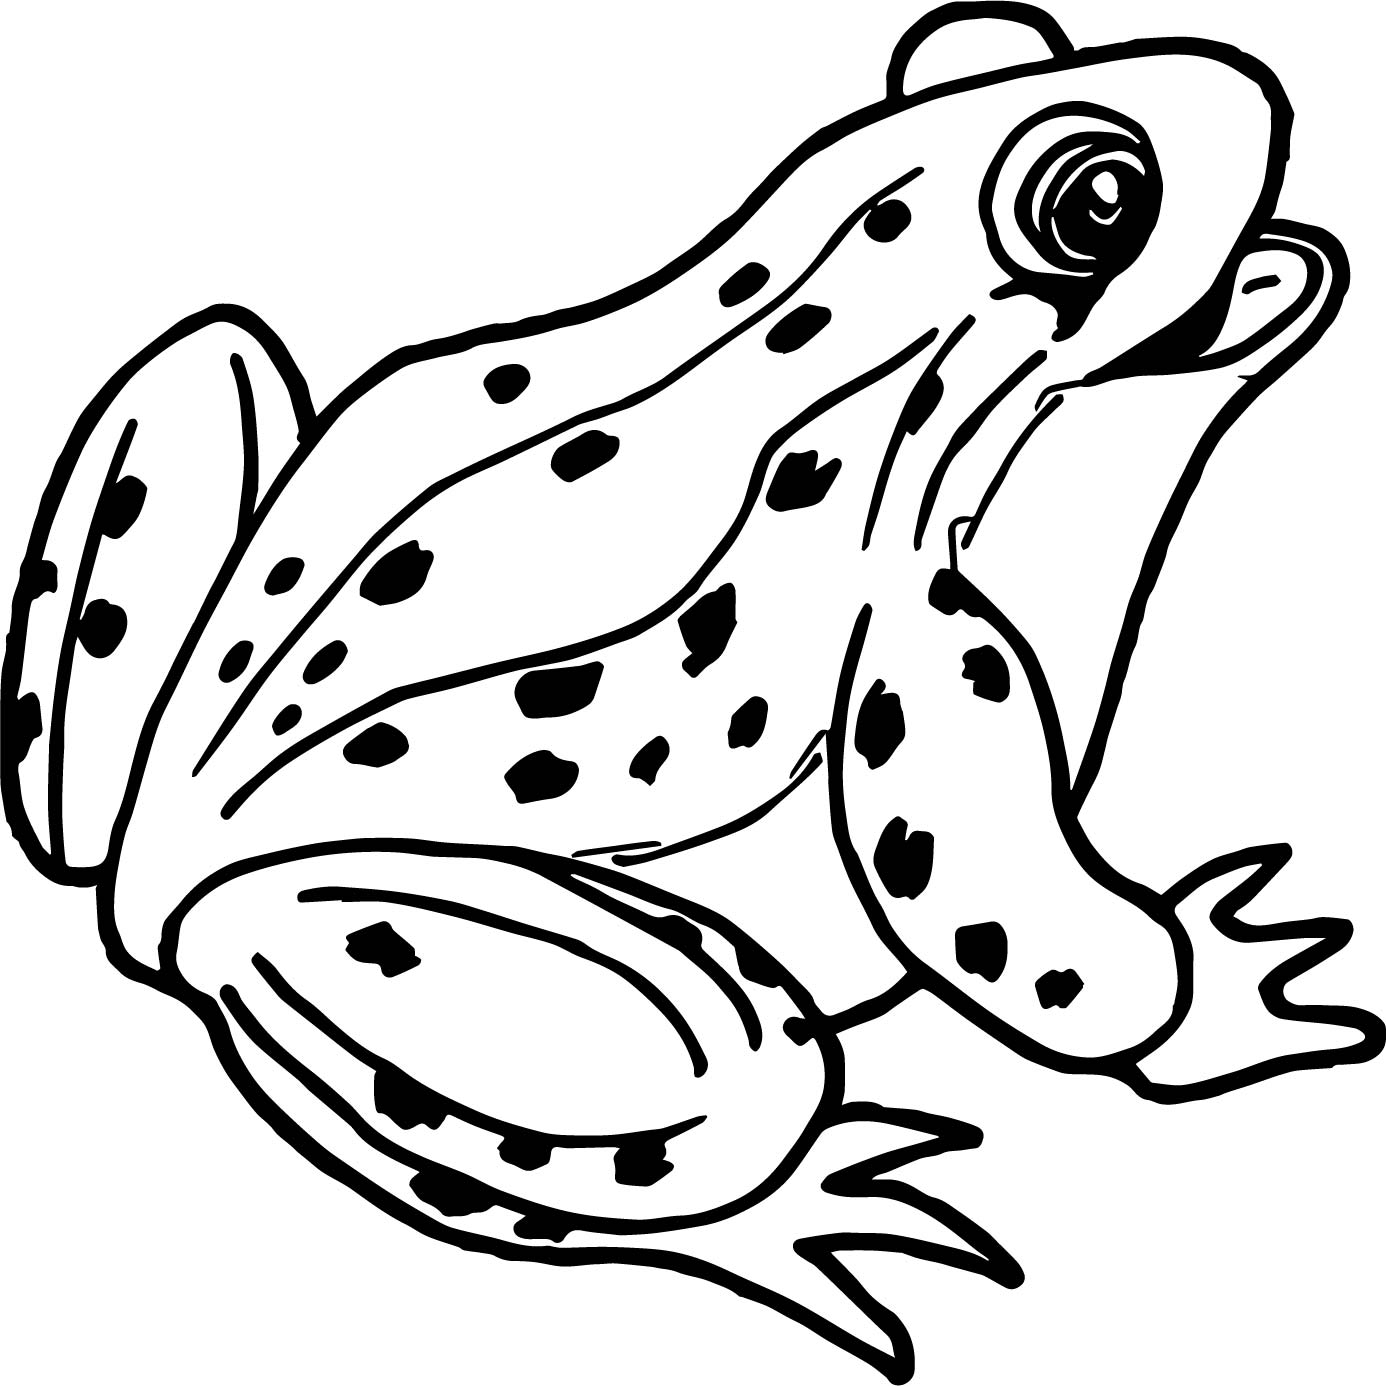 Realistic Frog Coloring Pages | Free download best Realistic Frog ...